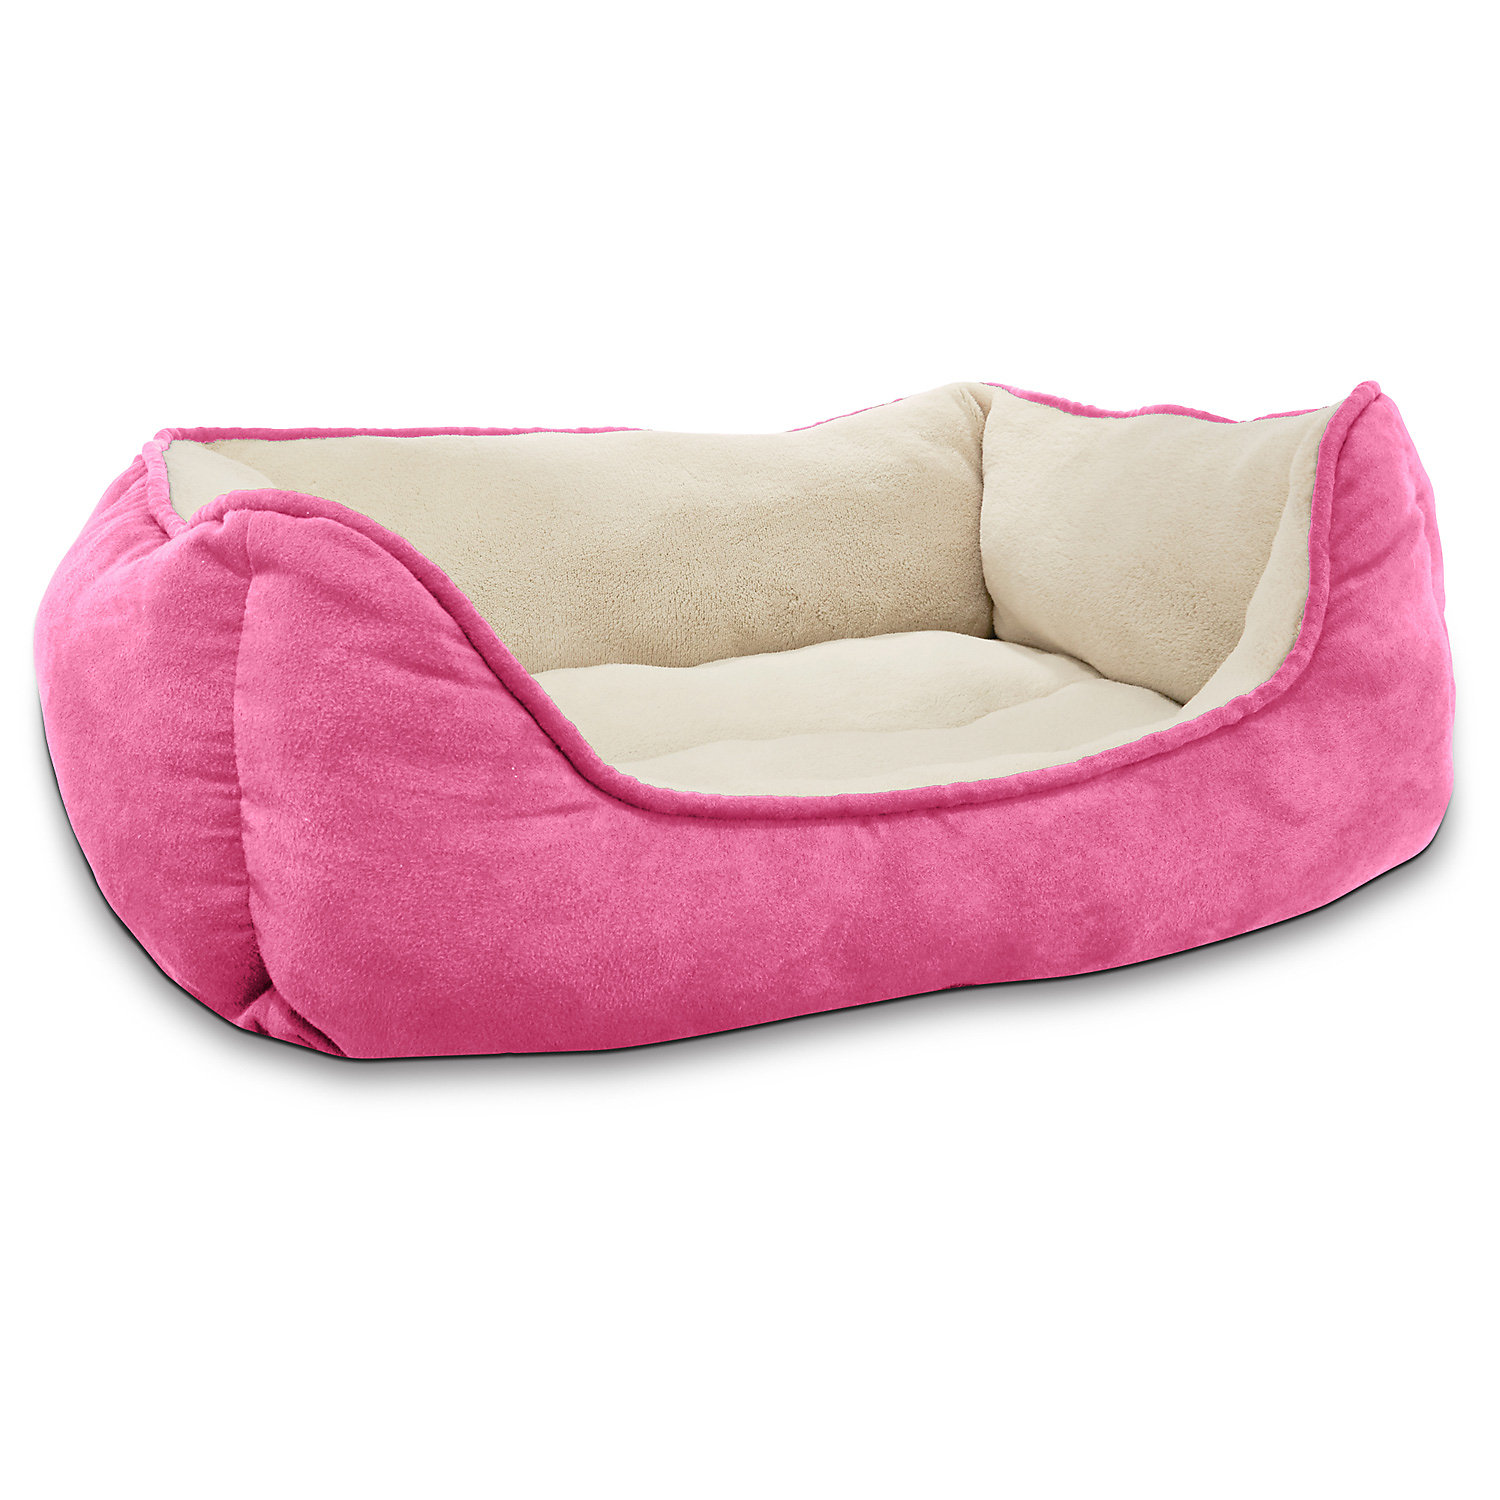 only petco bed free minimum shipped beds shipping regularly no dog